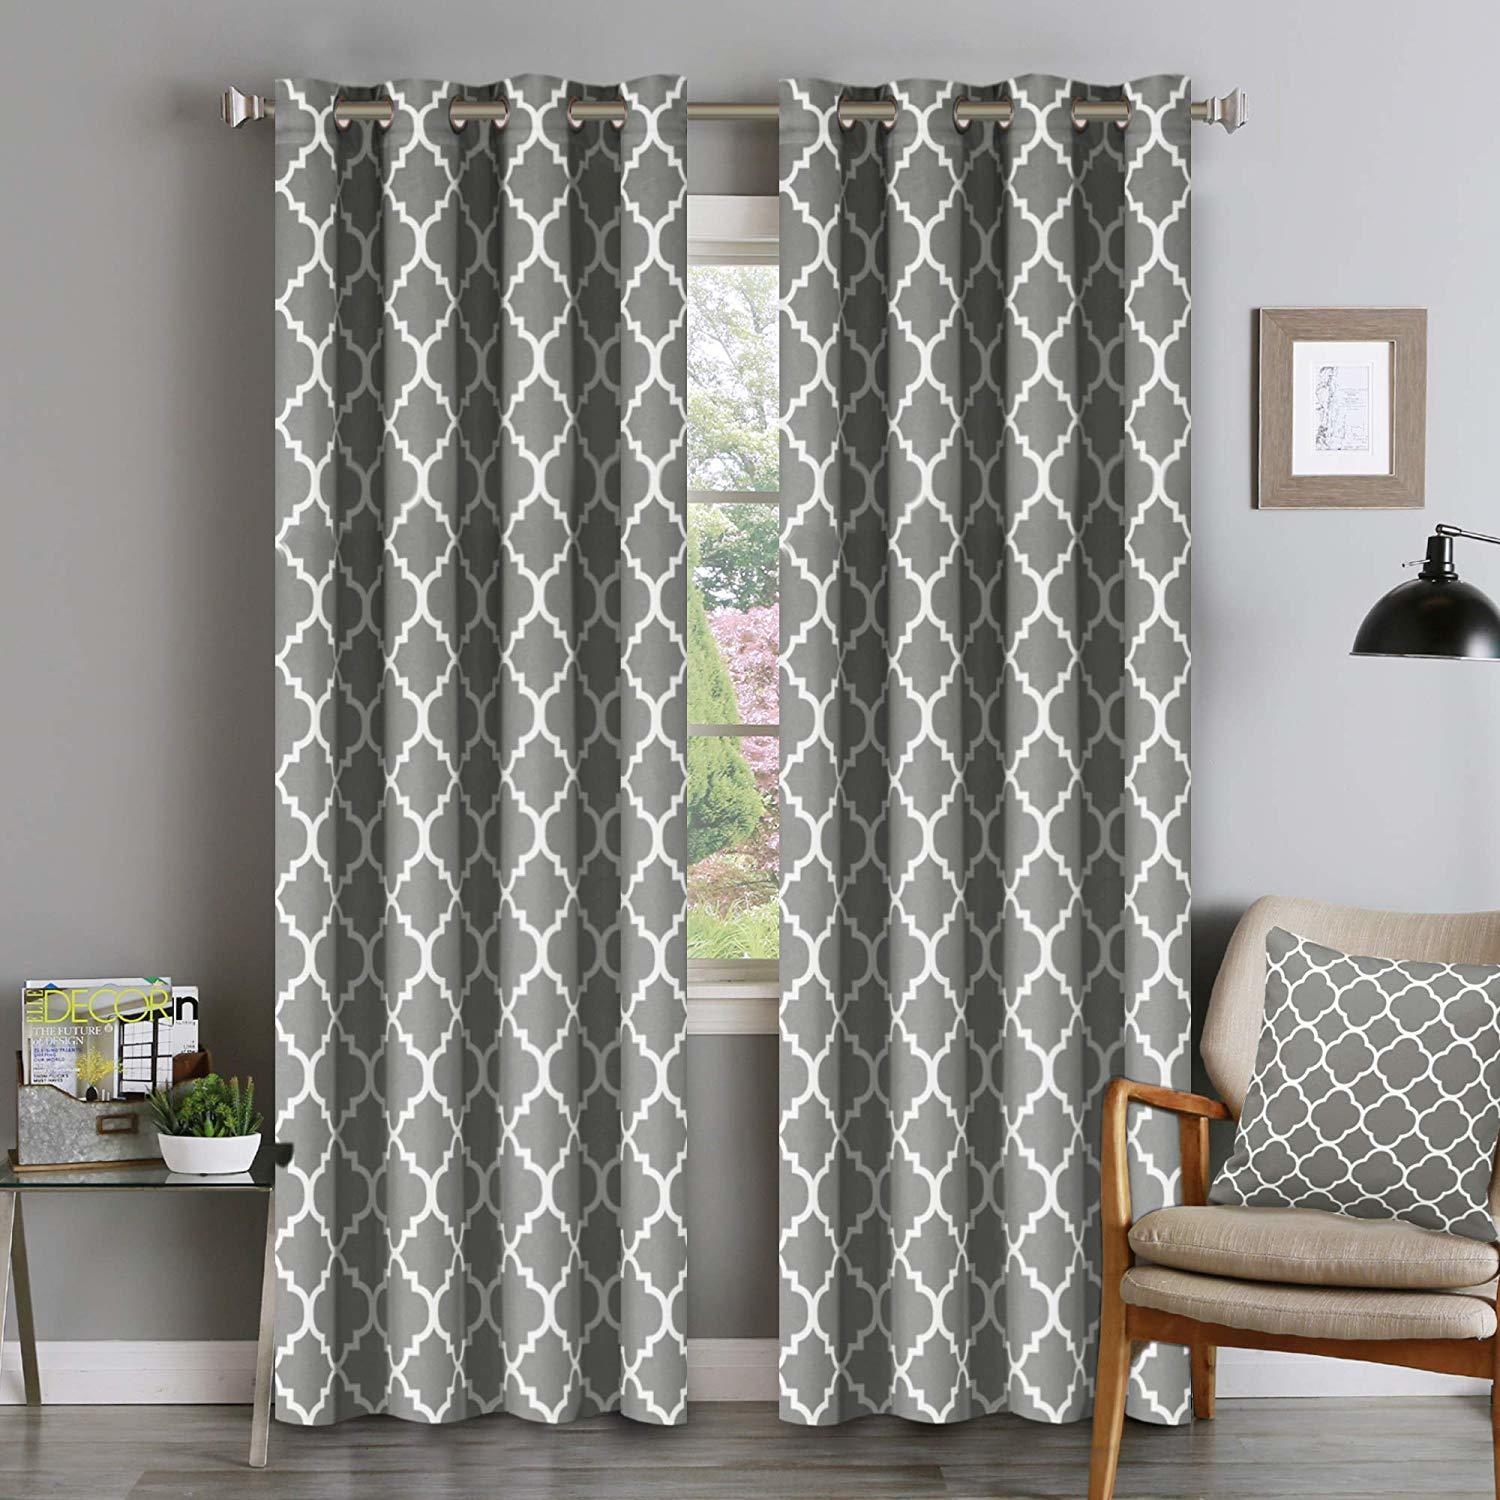 Top 10 Best Curtains for Living Room 2019 – Reviews & Top ...